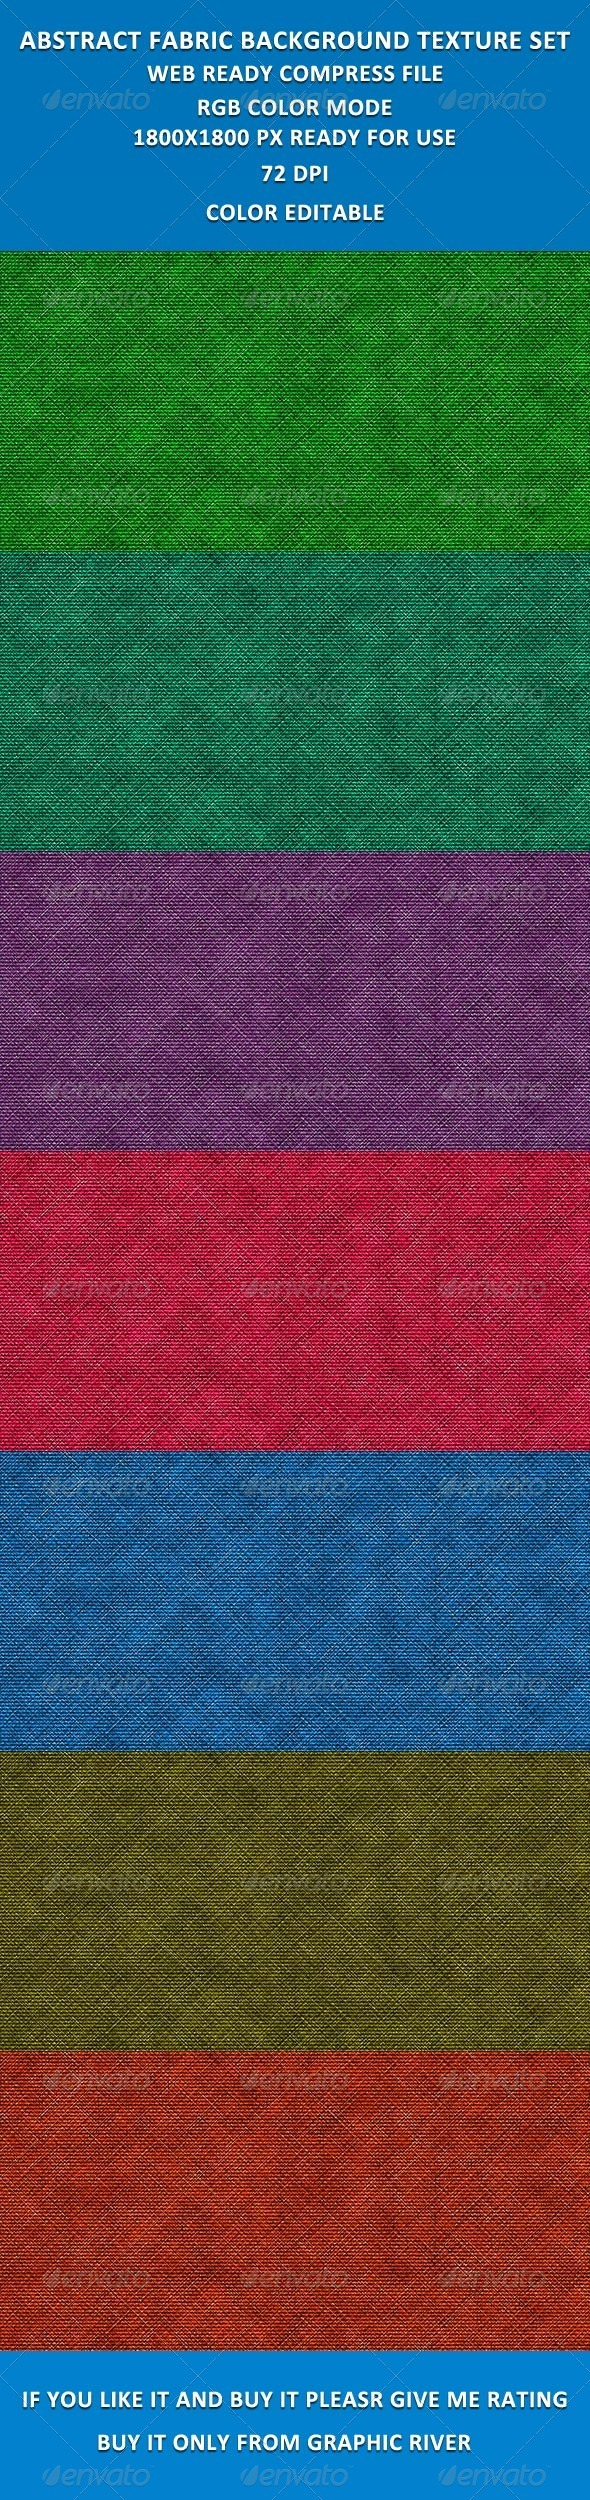 GraphicRiver Abstract Fabric Background Set2 3909181